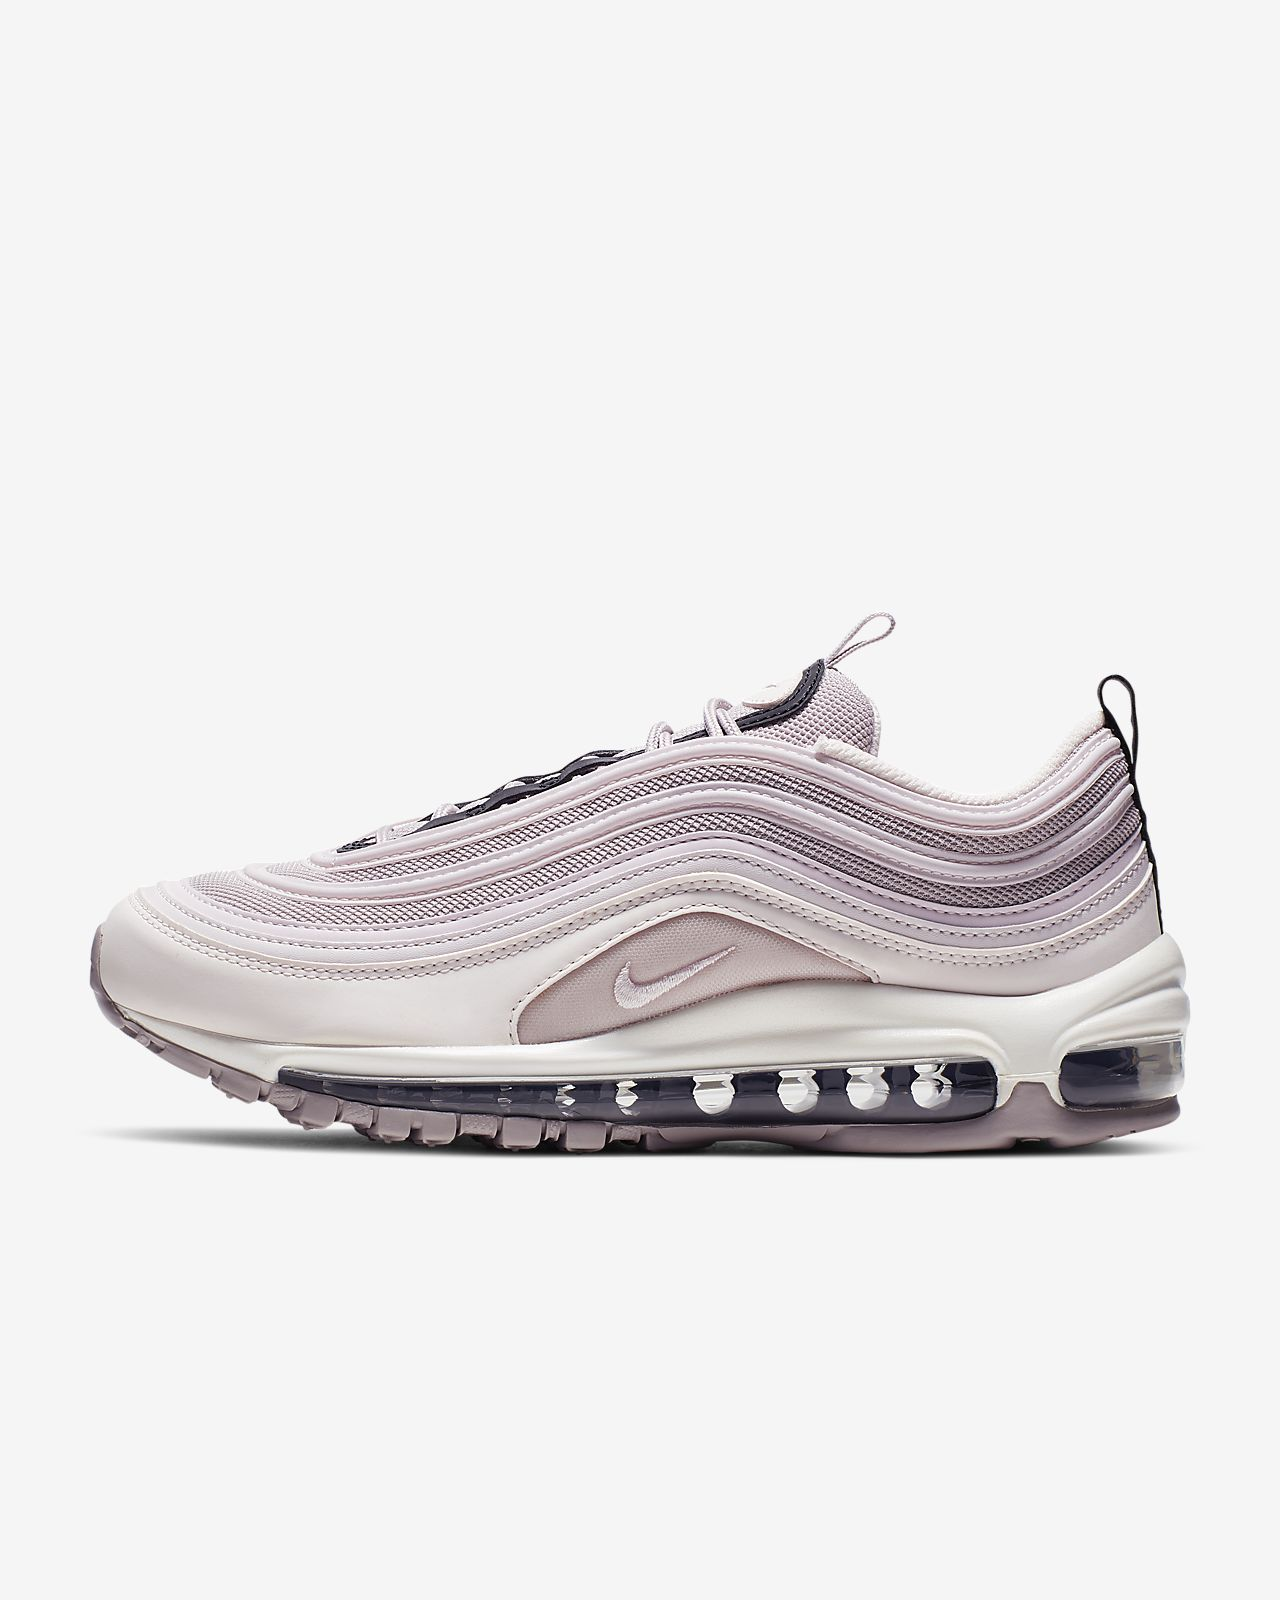 official photos 840e4 0445c ... Nike Air Max 97 Women s Shoe